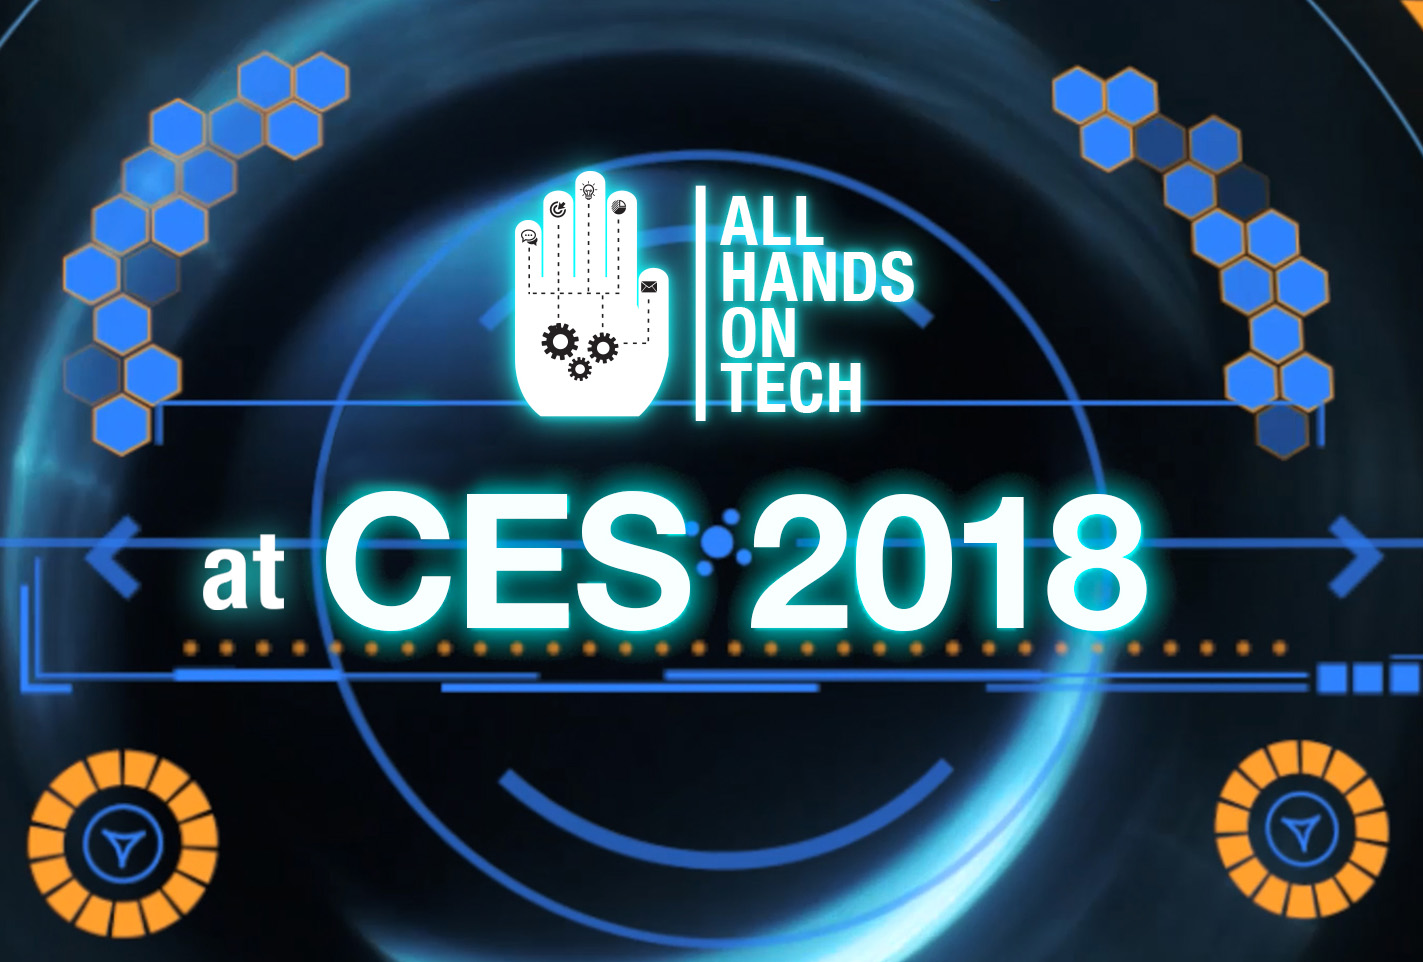 CES 2018 News coverage